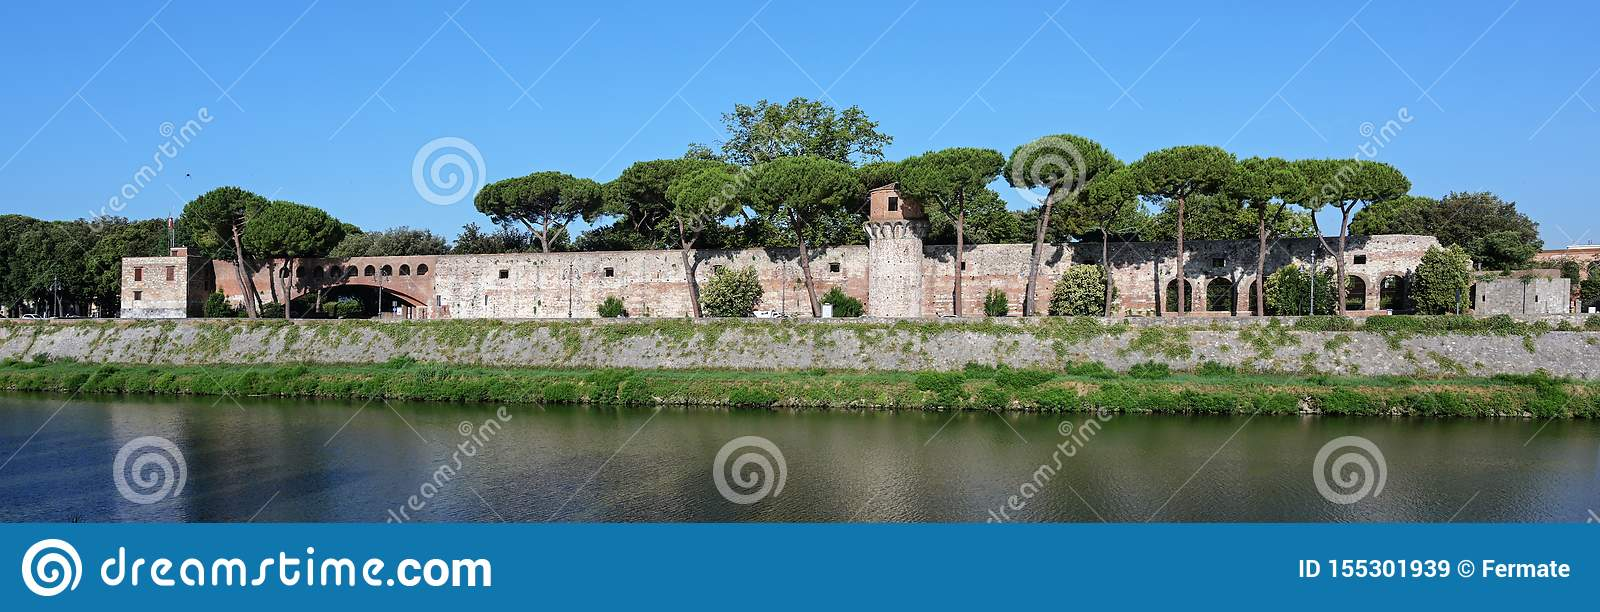 Panorama of the Cittadella Nuova New Citadel, now called Giardino Scotto Scotto`s Garden an old fortress in Pisa at the river